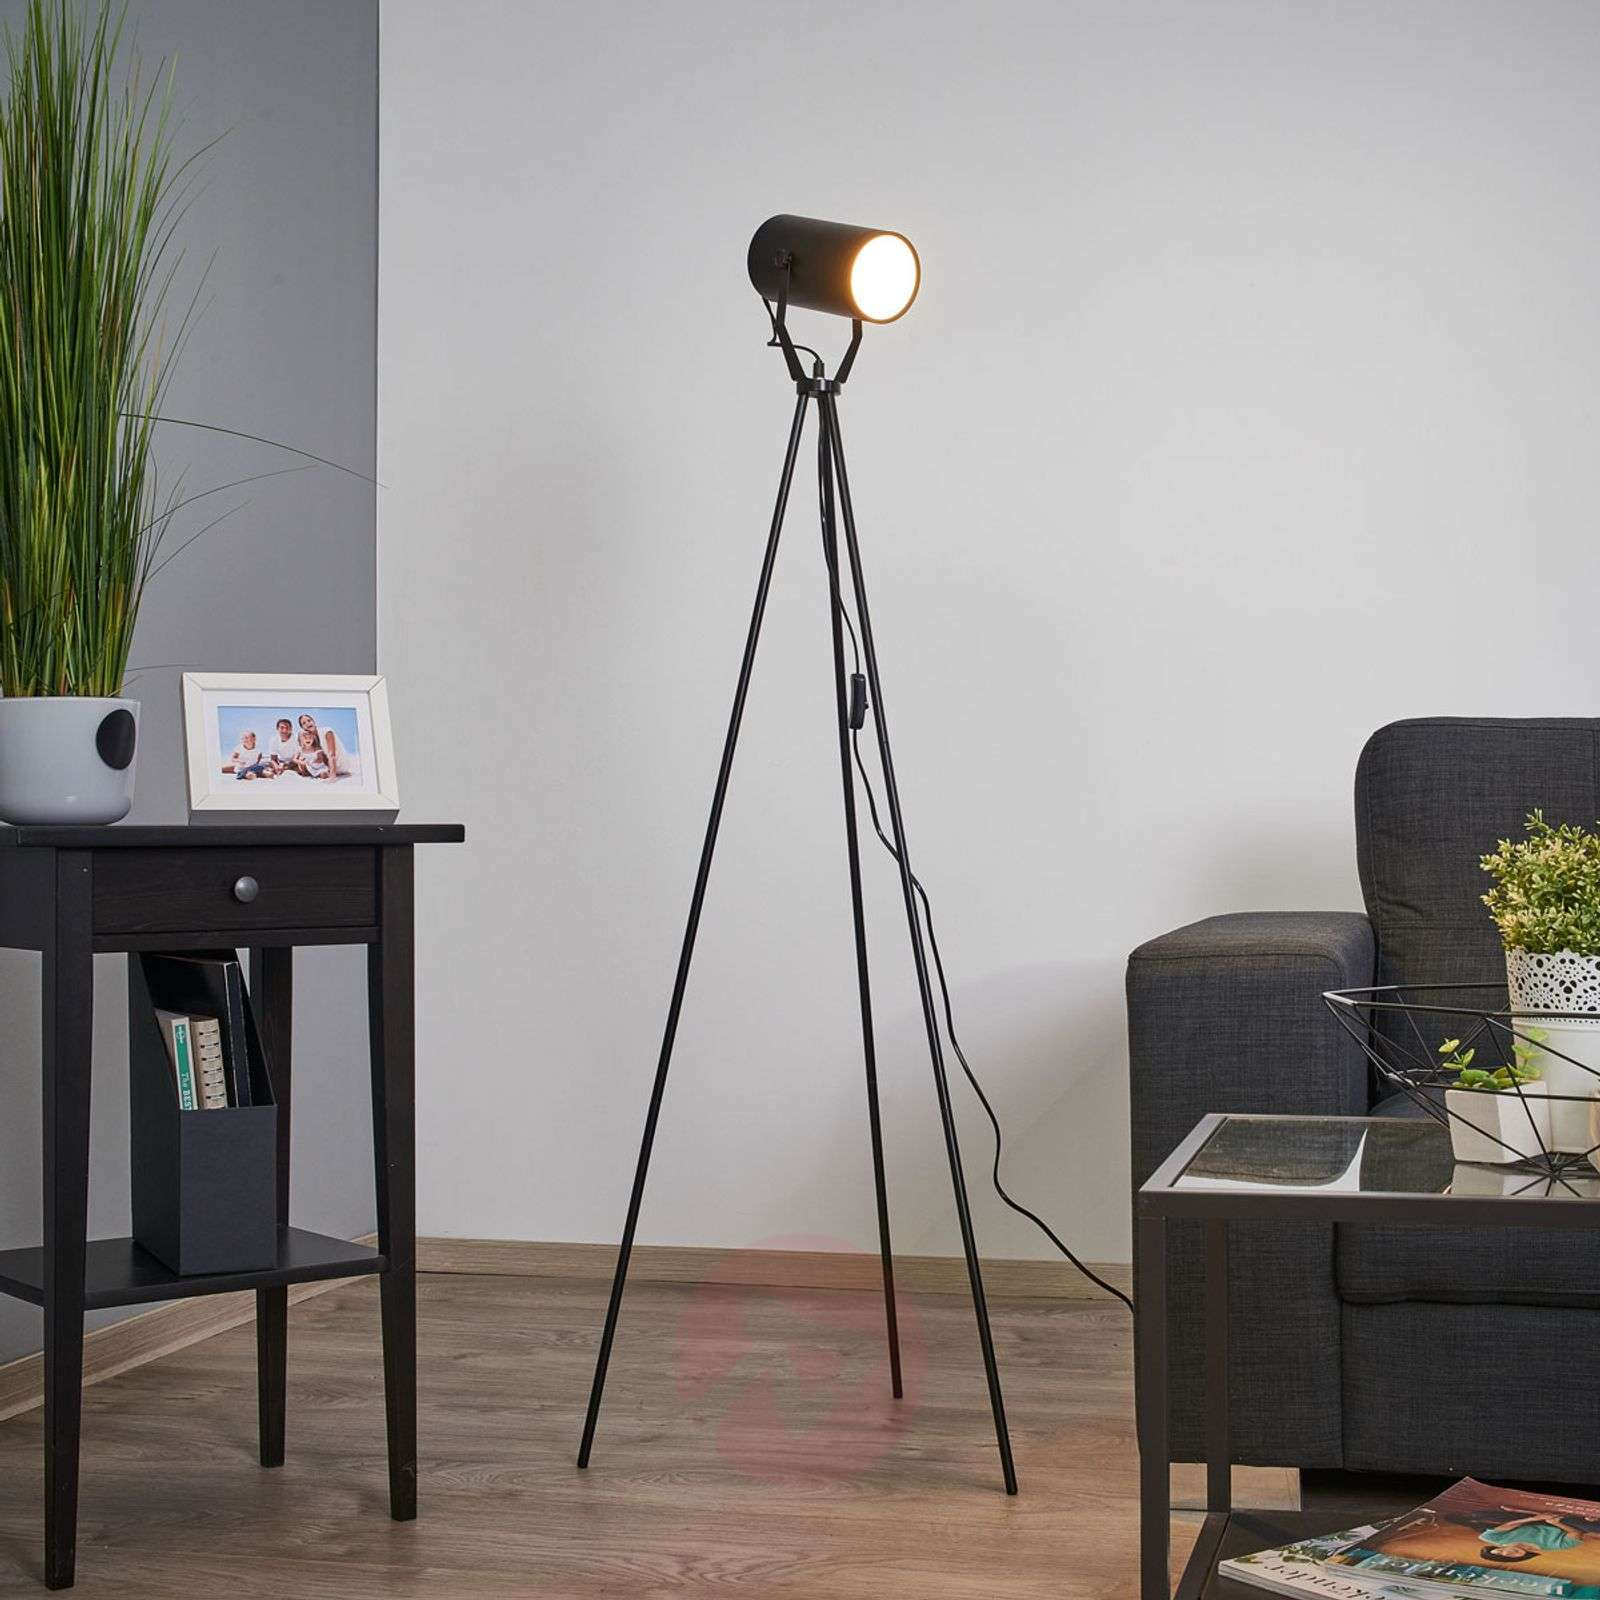 Pulse LED table lamp with a tripod frame | Lights.co.uk